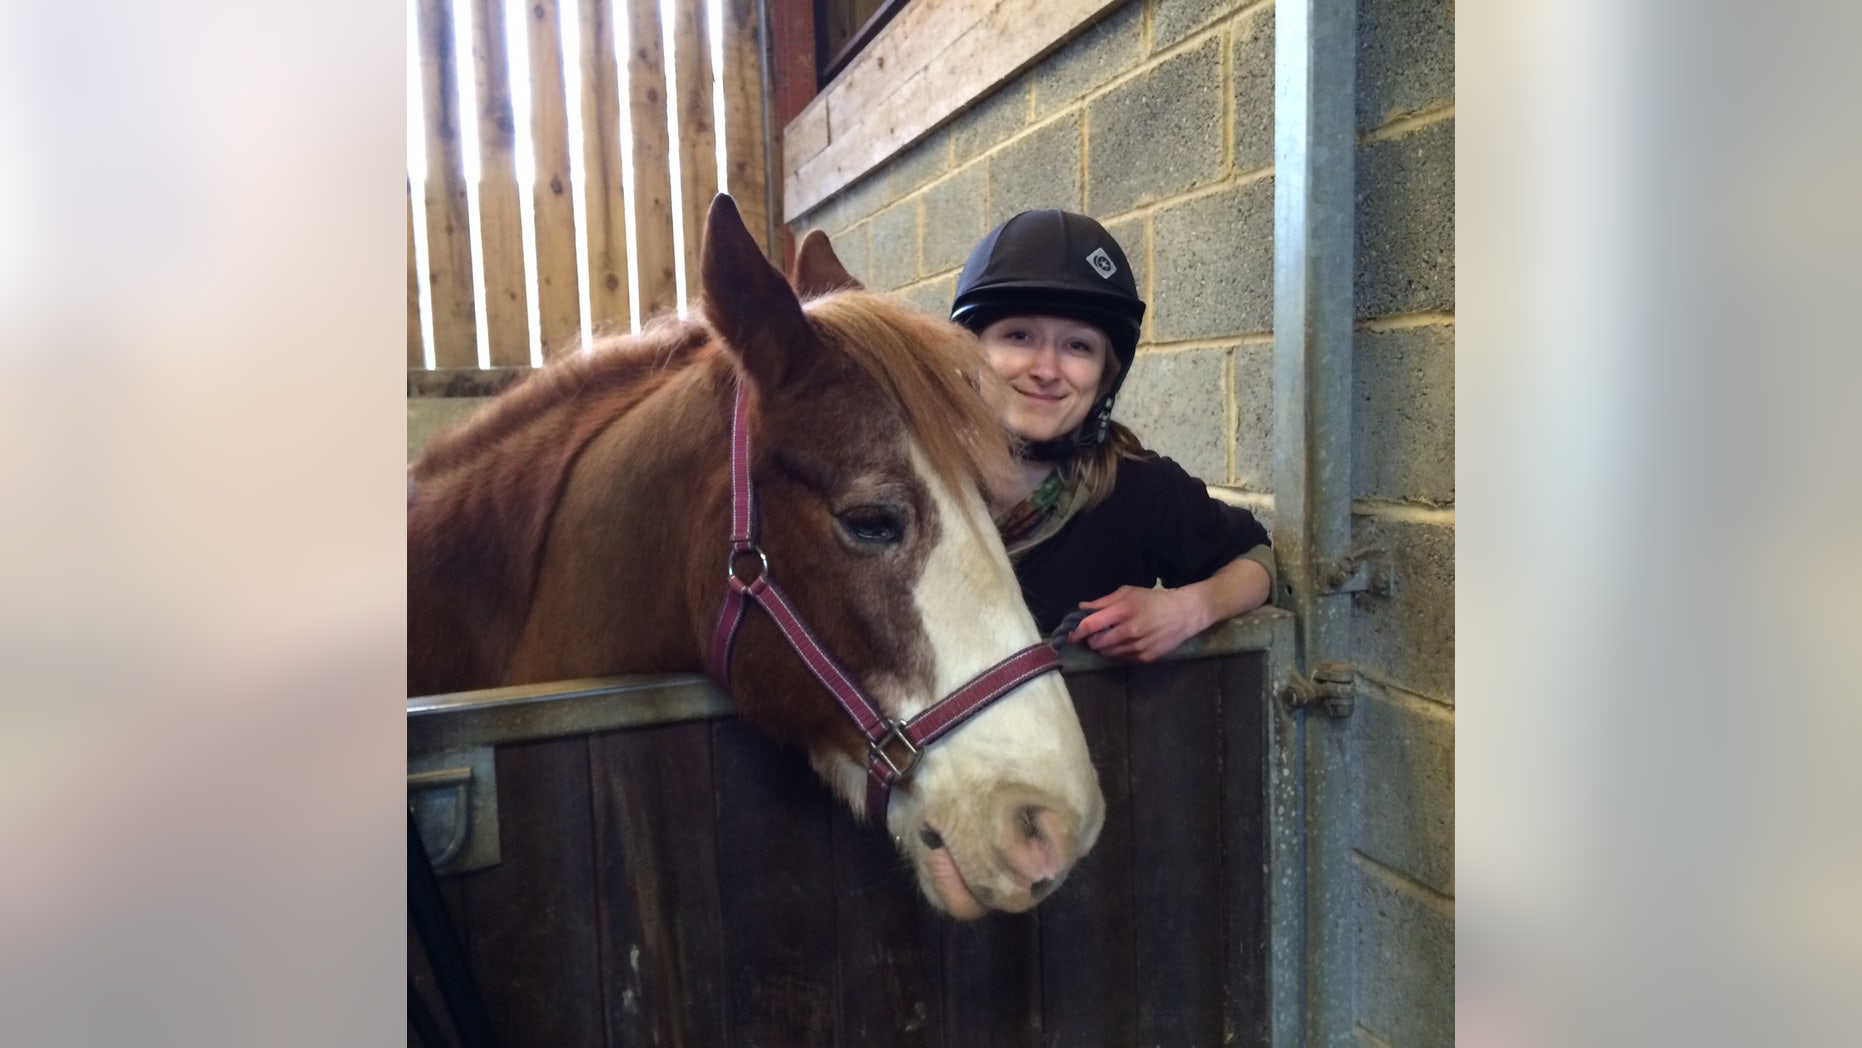 University of Sussex researcher Amy Smith with one of the horses from the study. (University of Sussex)